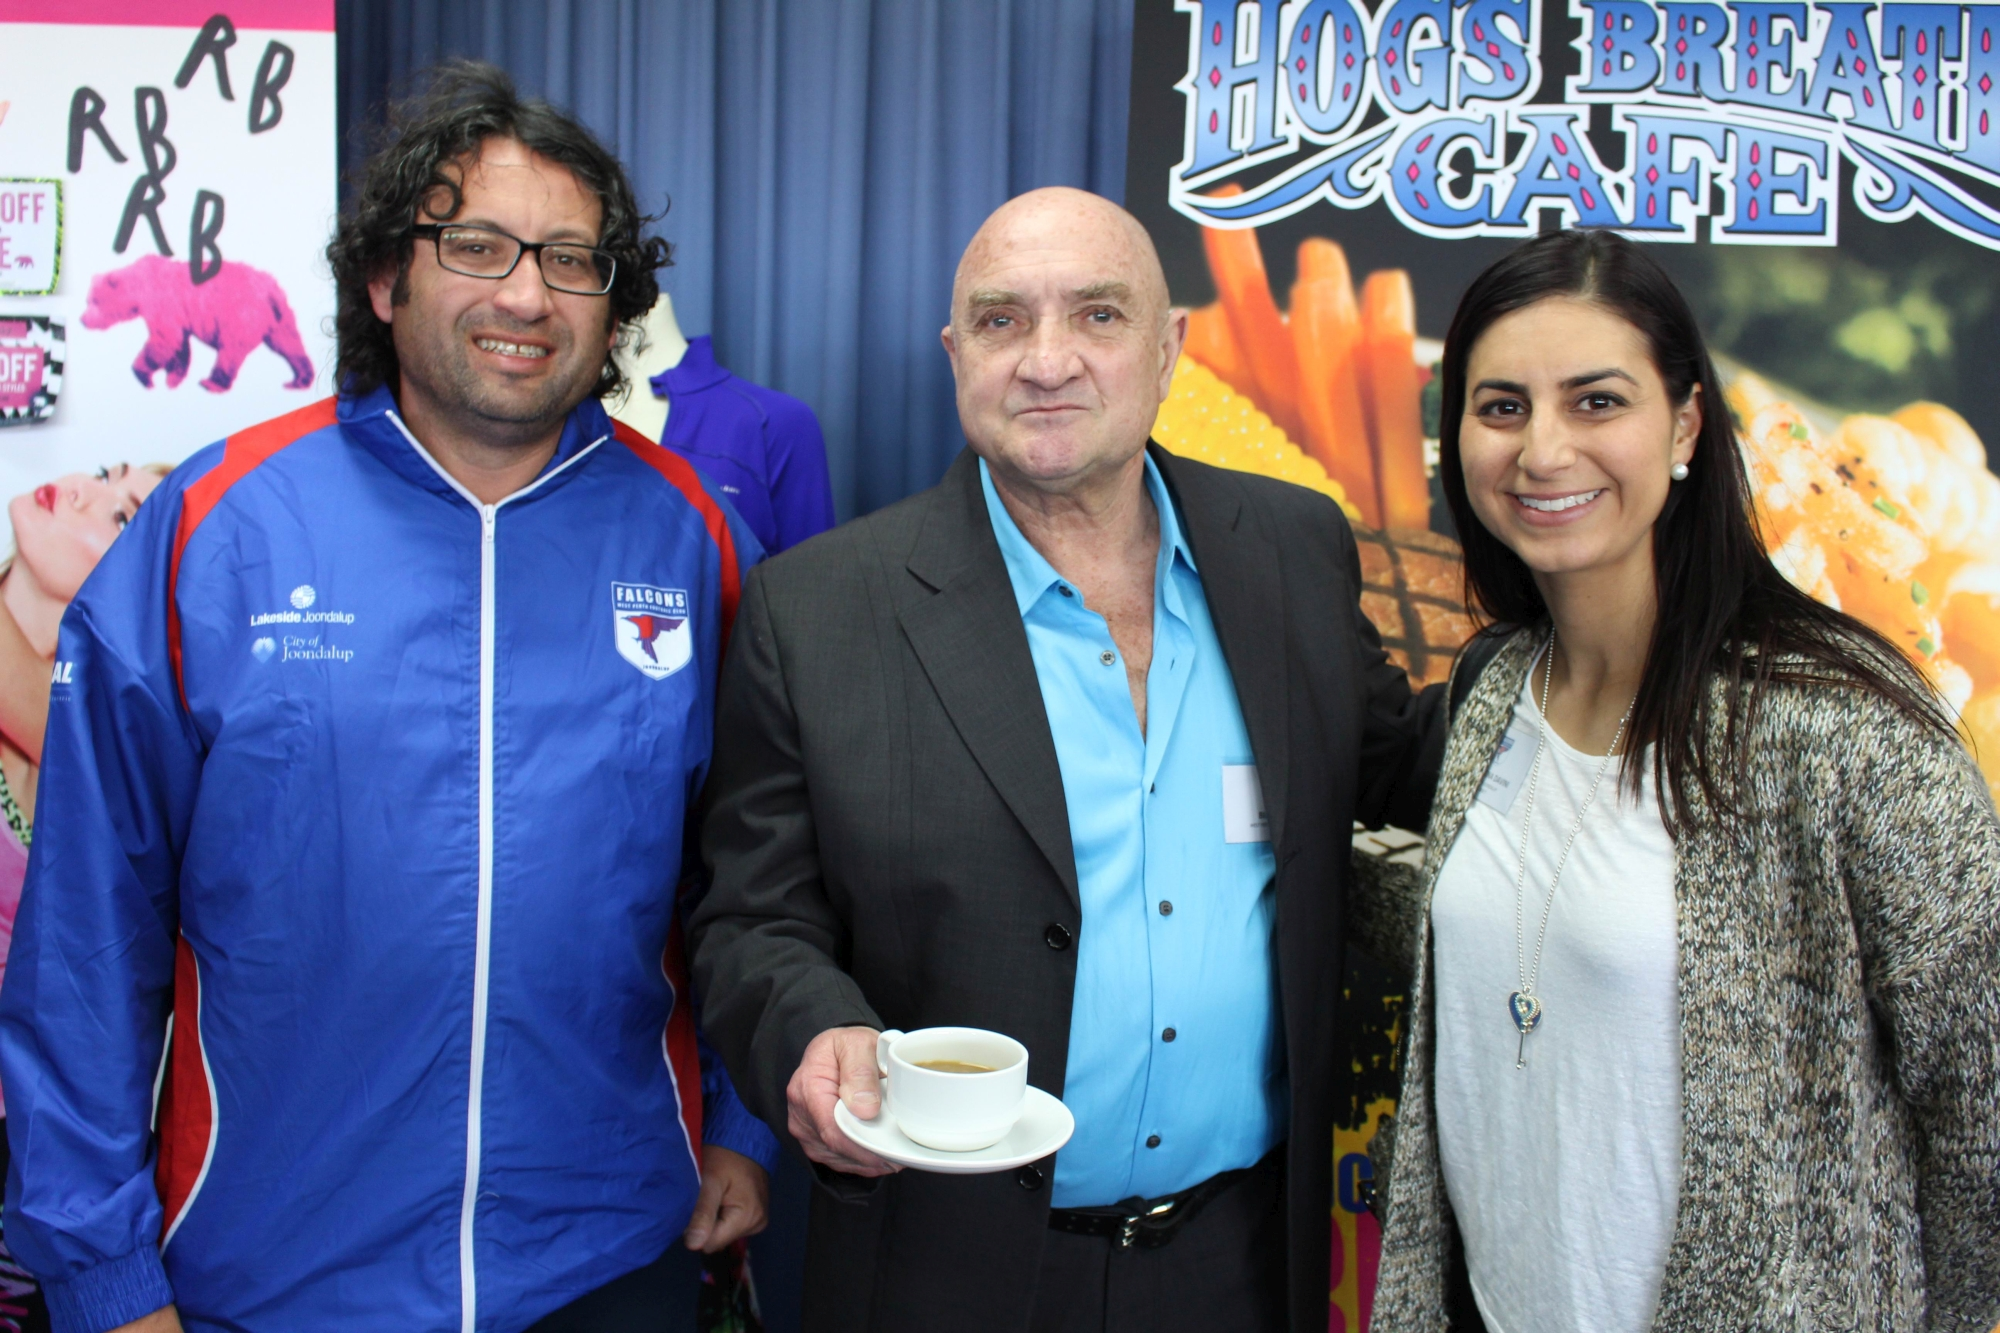 Former West Perth player and Team of the Century member Bill Valli flanked by club director Richard Homsany and Falcons supporter Christina Davini.